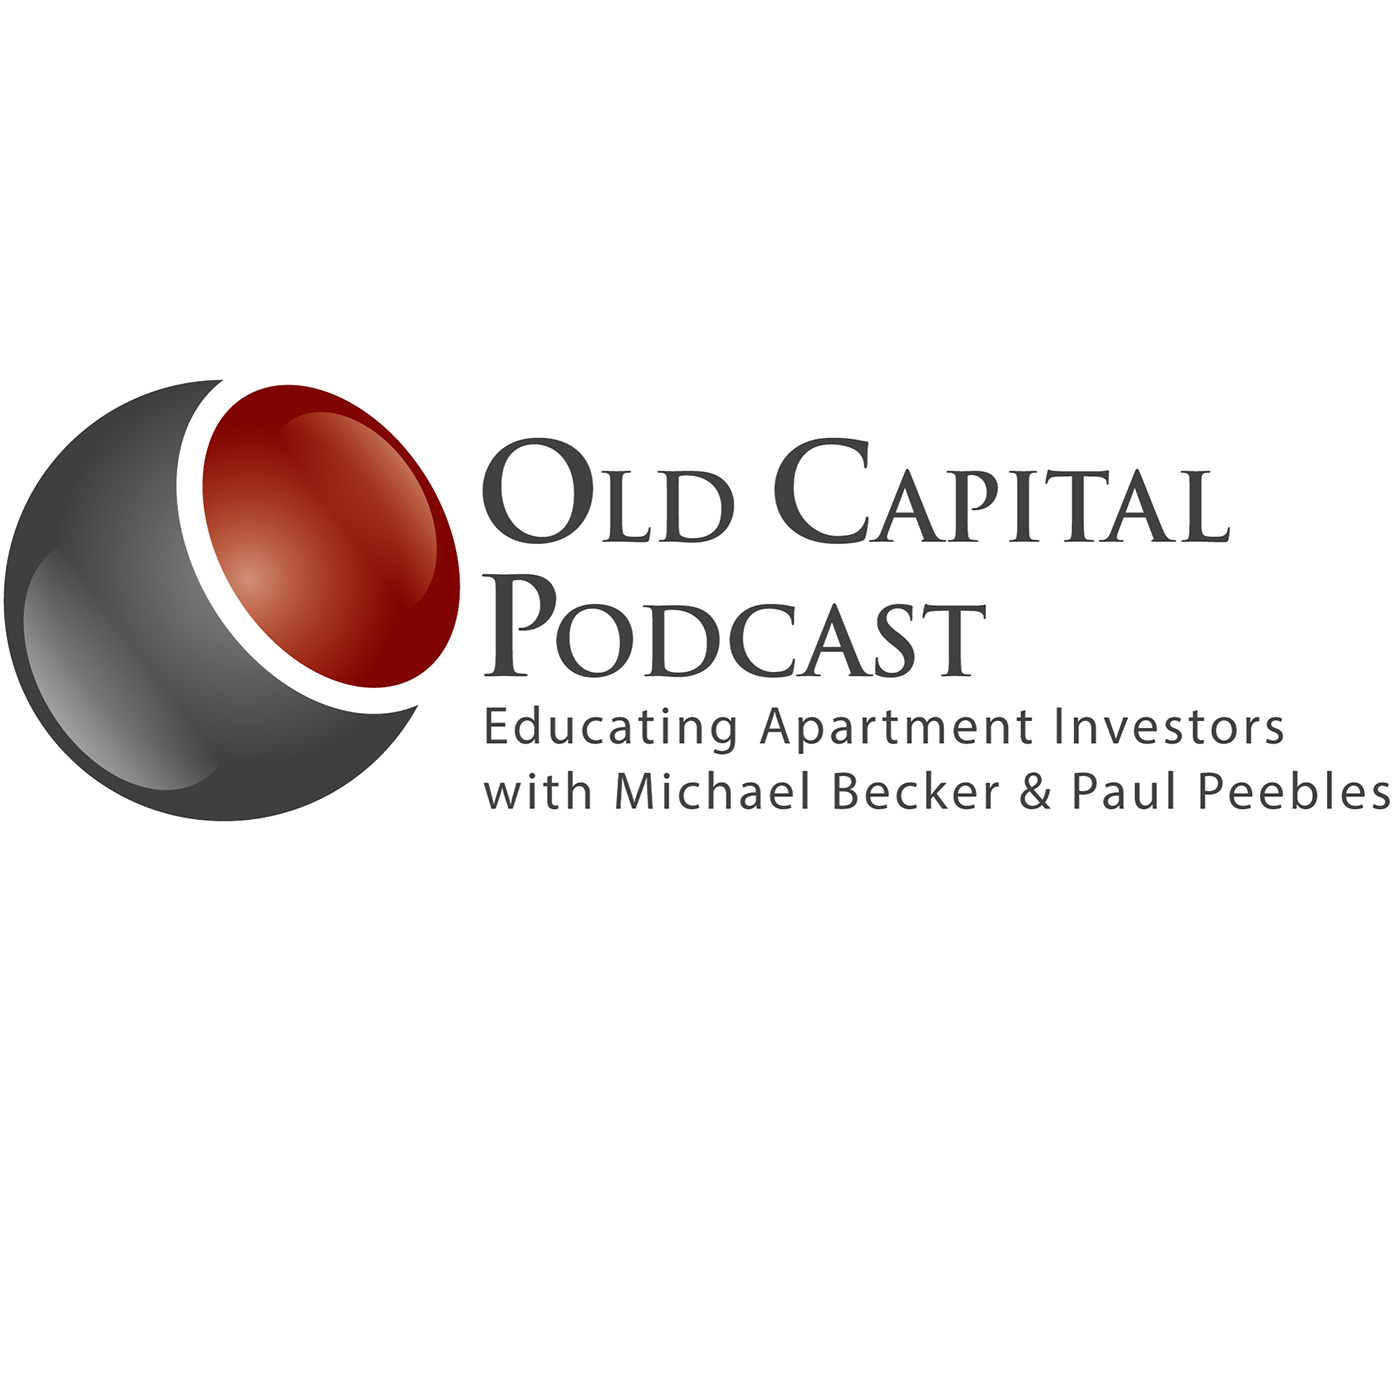 Artwork for Episode 176 - Transitioning from Wall Street to Apartment Investing: now owns over 500 units